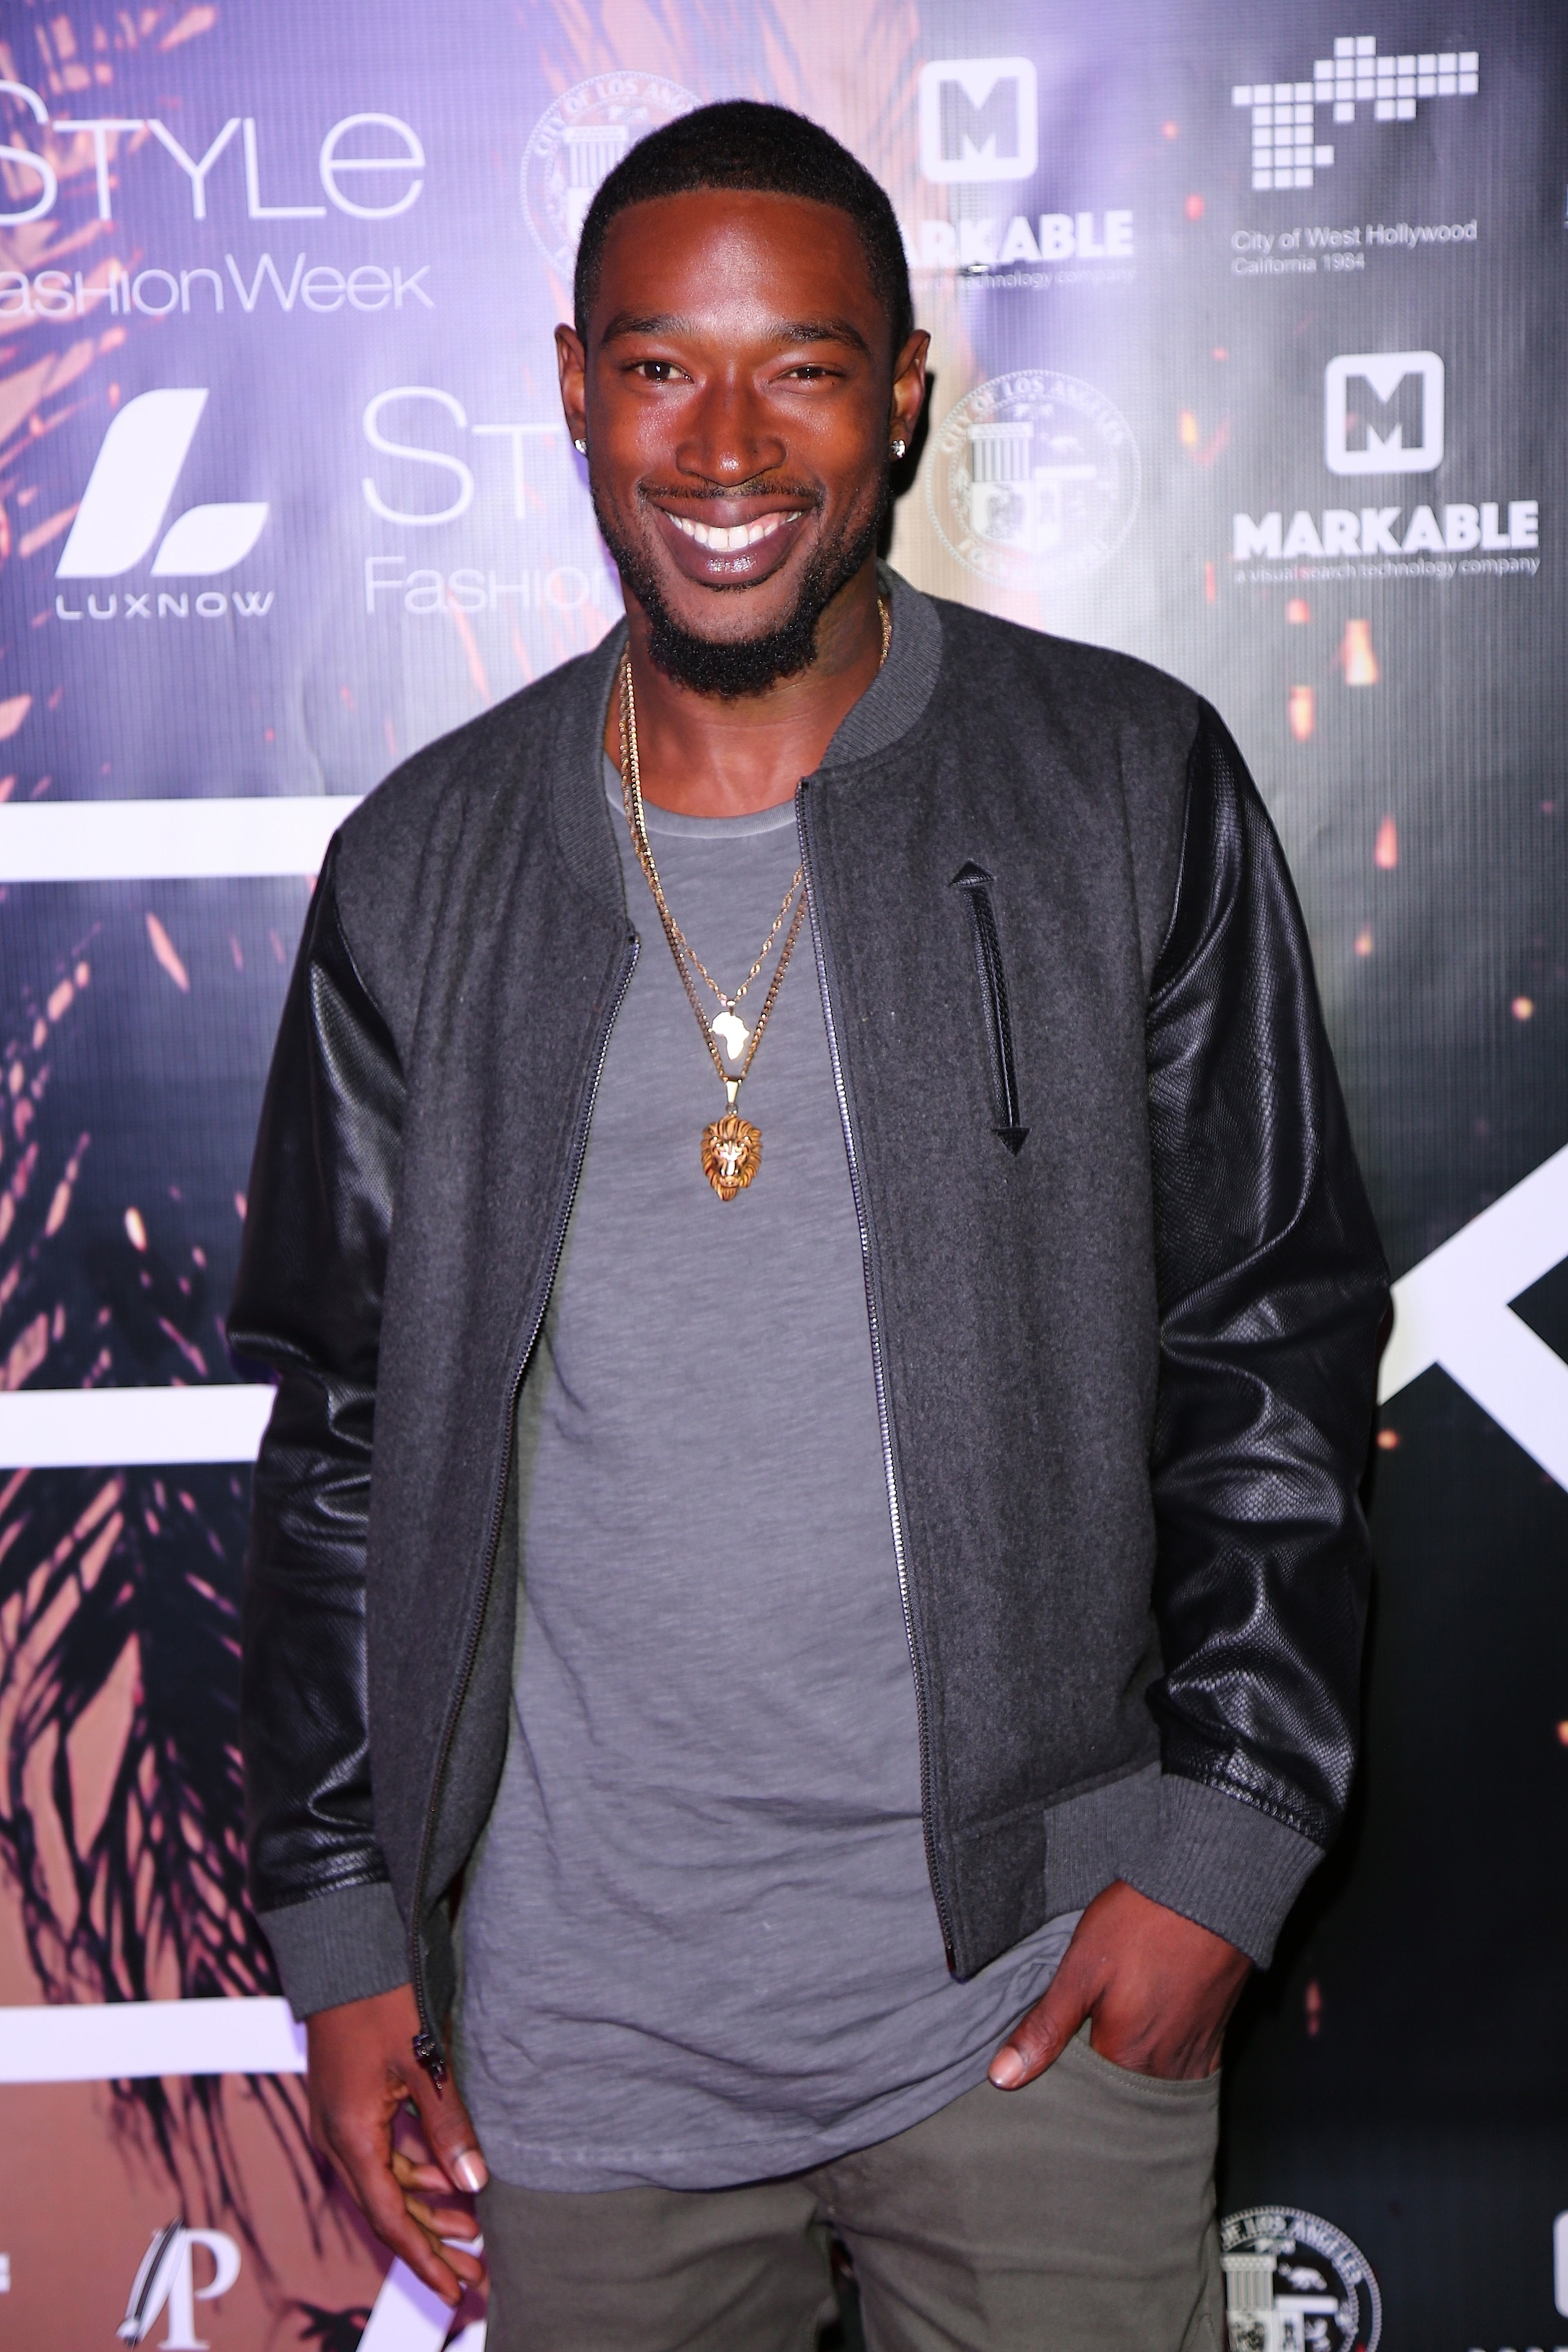 10/14/2016 - Kevin McCall - Style Fashion Week L.A. Spring/Summer 2017 - Arrivals - Specific Design Center - West Hollywood, CA, USA - Keywords: Orientation: Portrait Face Count: 2 - False - Photo Credit: Winston Burris / PR Photos - Contact (1-866-551-7827) - Portrait Face Count: 2